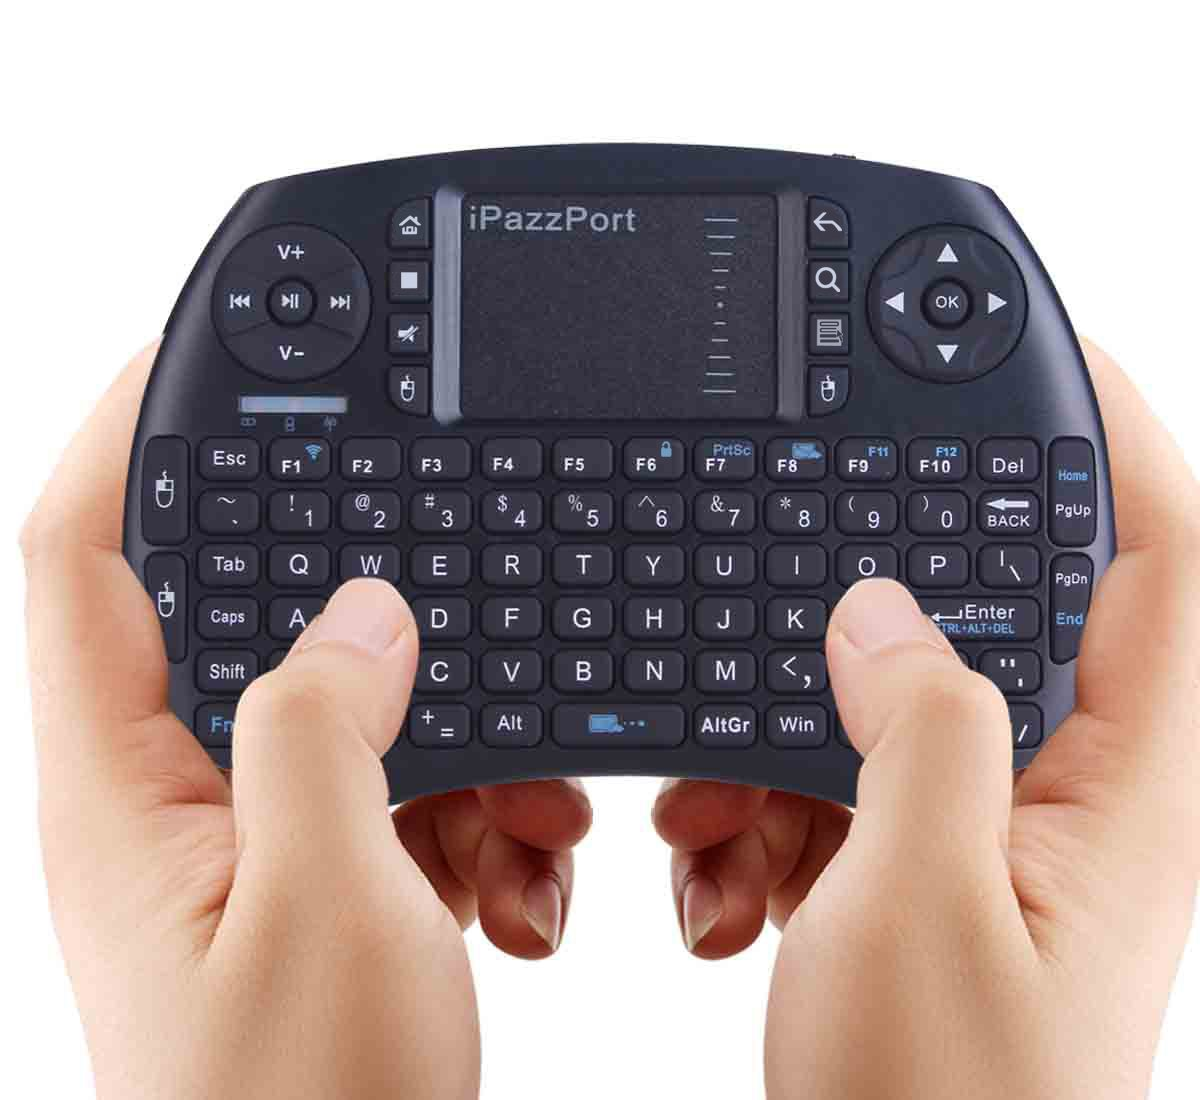 ipazzport wireless mini keyboard with touchpad for android tv box and raspberry 799491935228 ebay. Black Bedroom Furniture Sets. Home Design Ideas